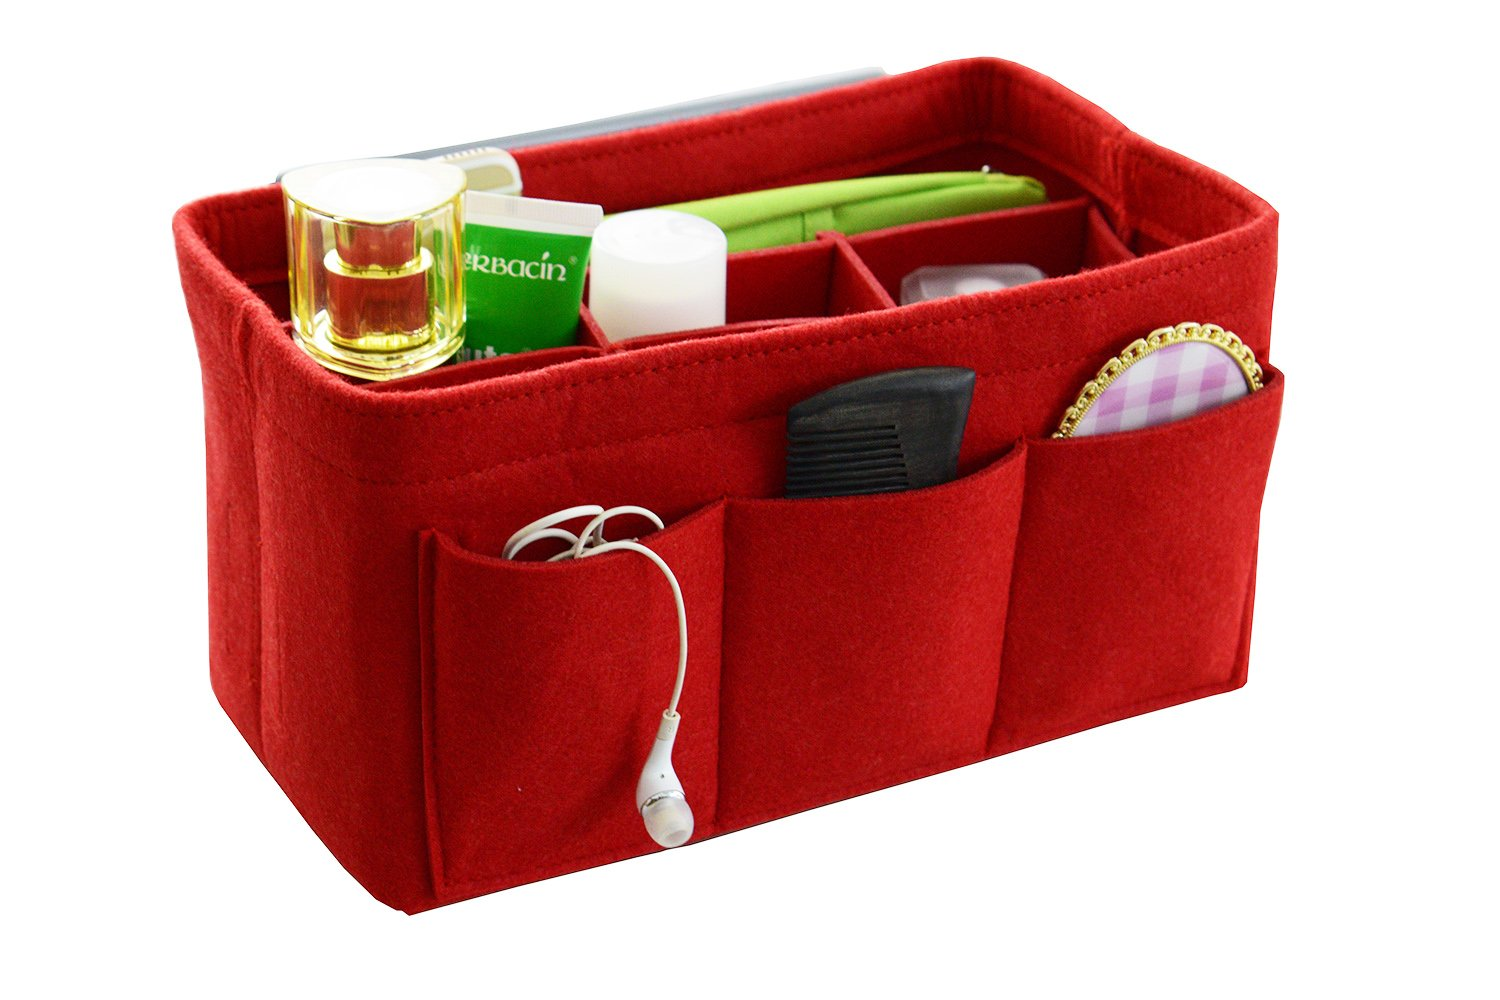 Felt Fabric Handbag Organizer,Insert Purse Organizer 12 Pockets Structure Shaper 4 size Red Small